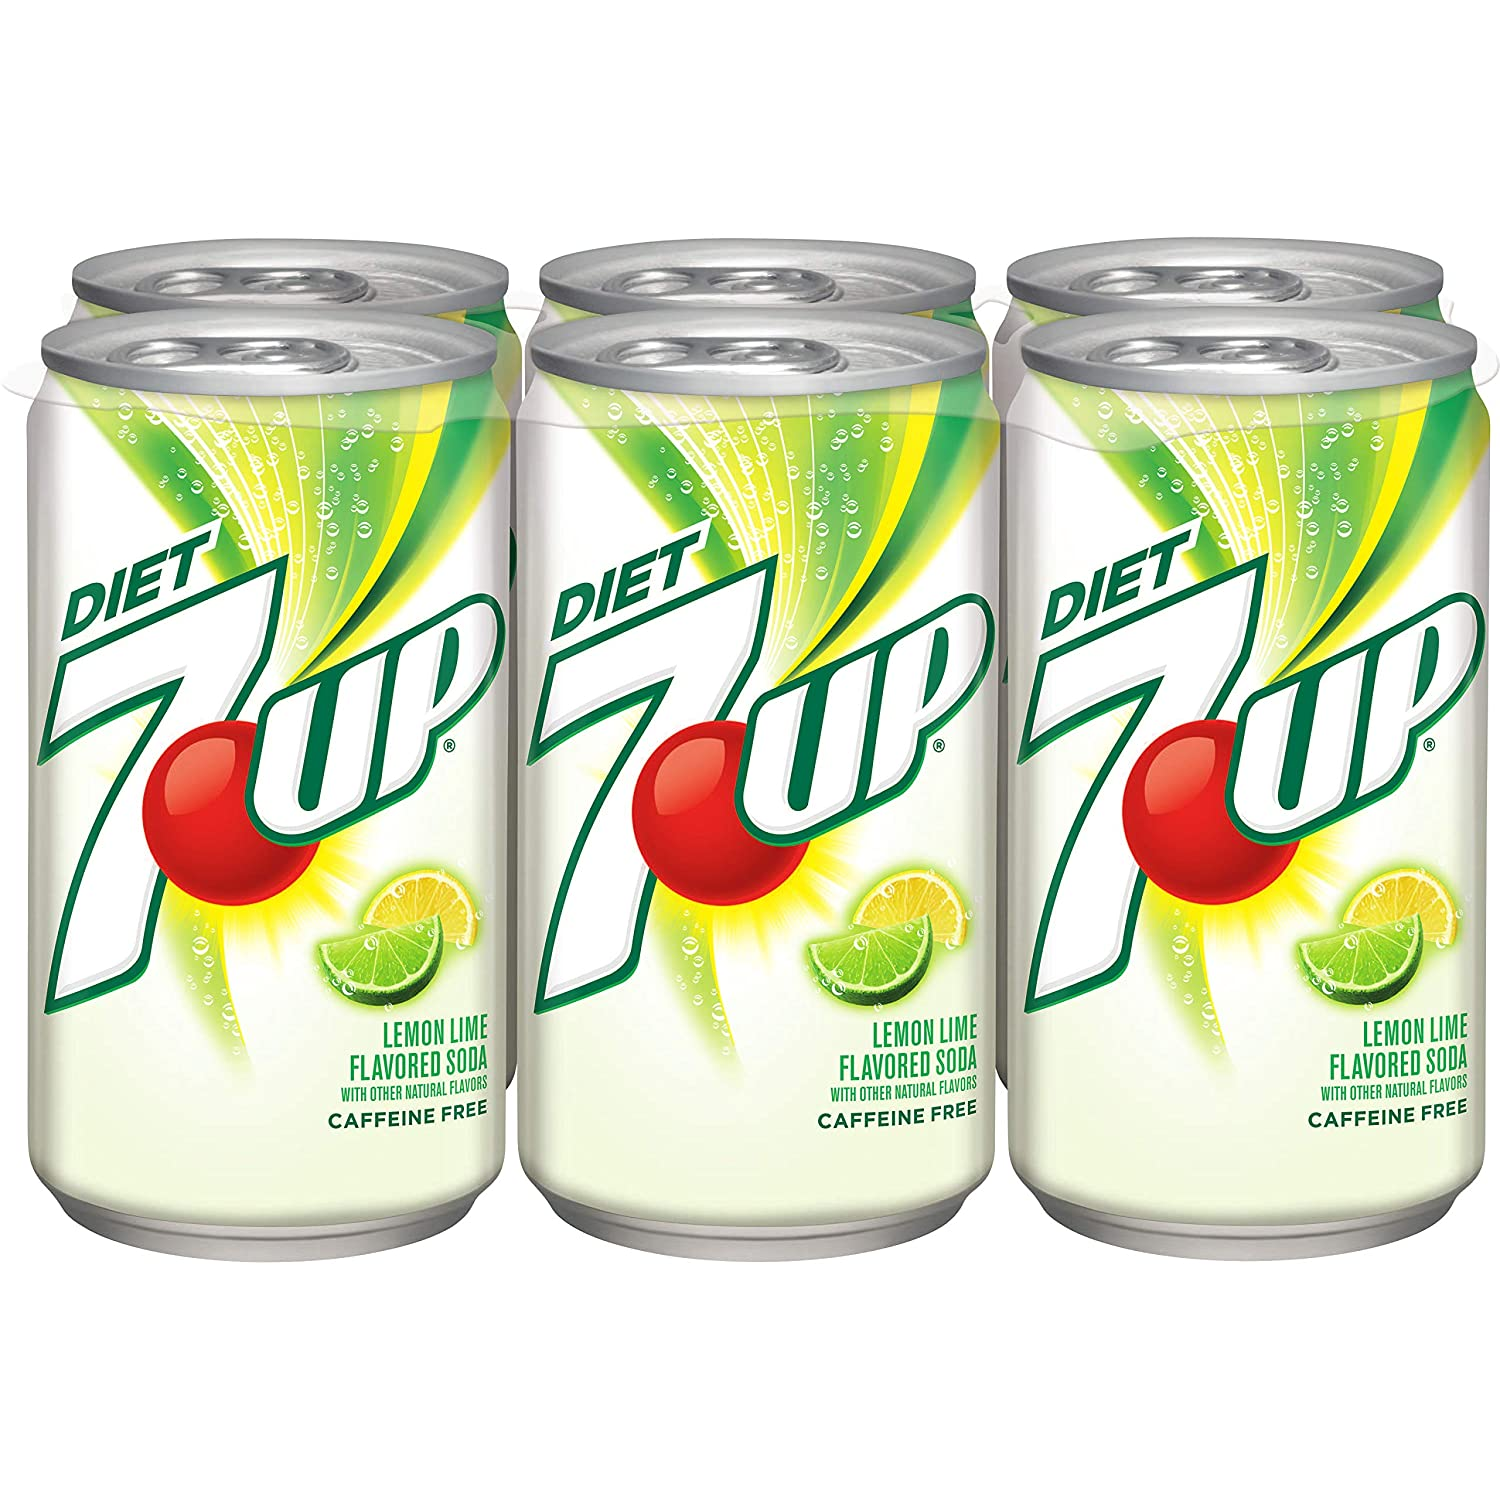 stm>7-Up Diet, 6 pack